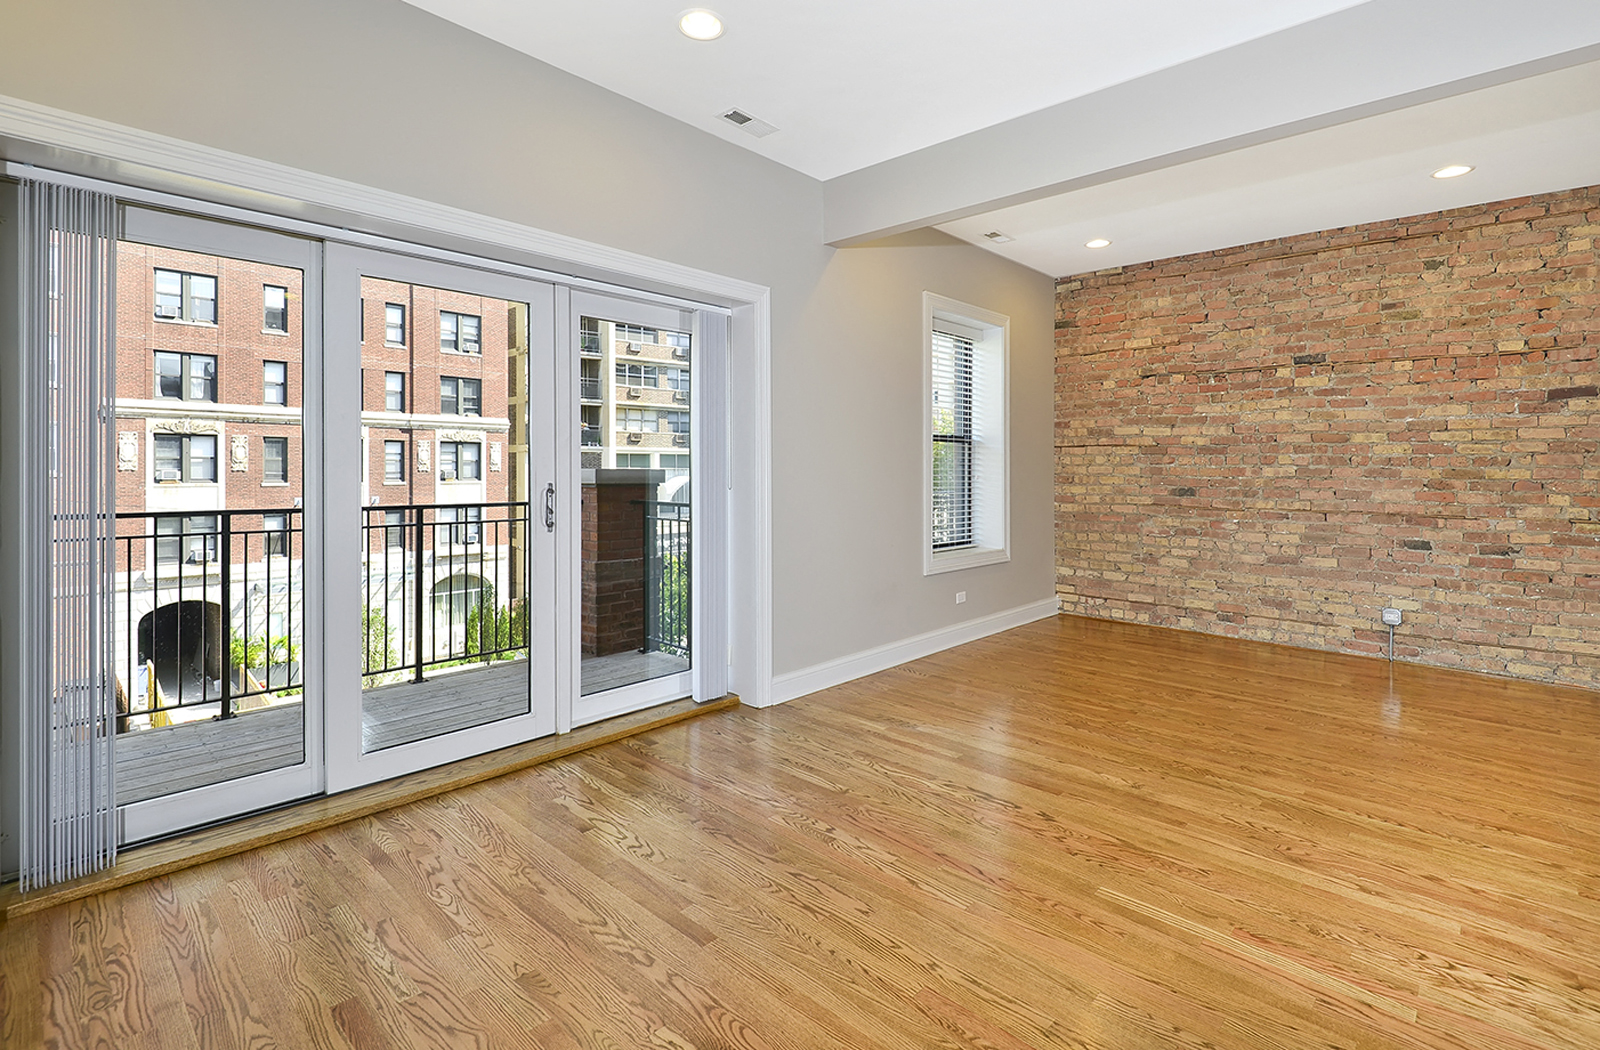 Hard Wood Floors At The Belmont By Reside Flats, Chicago, IL, 60657